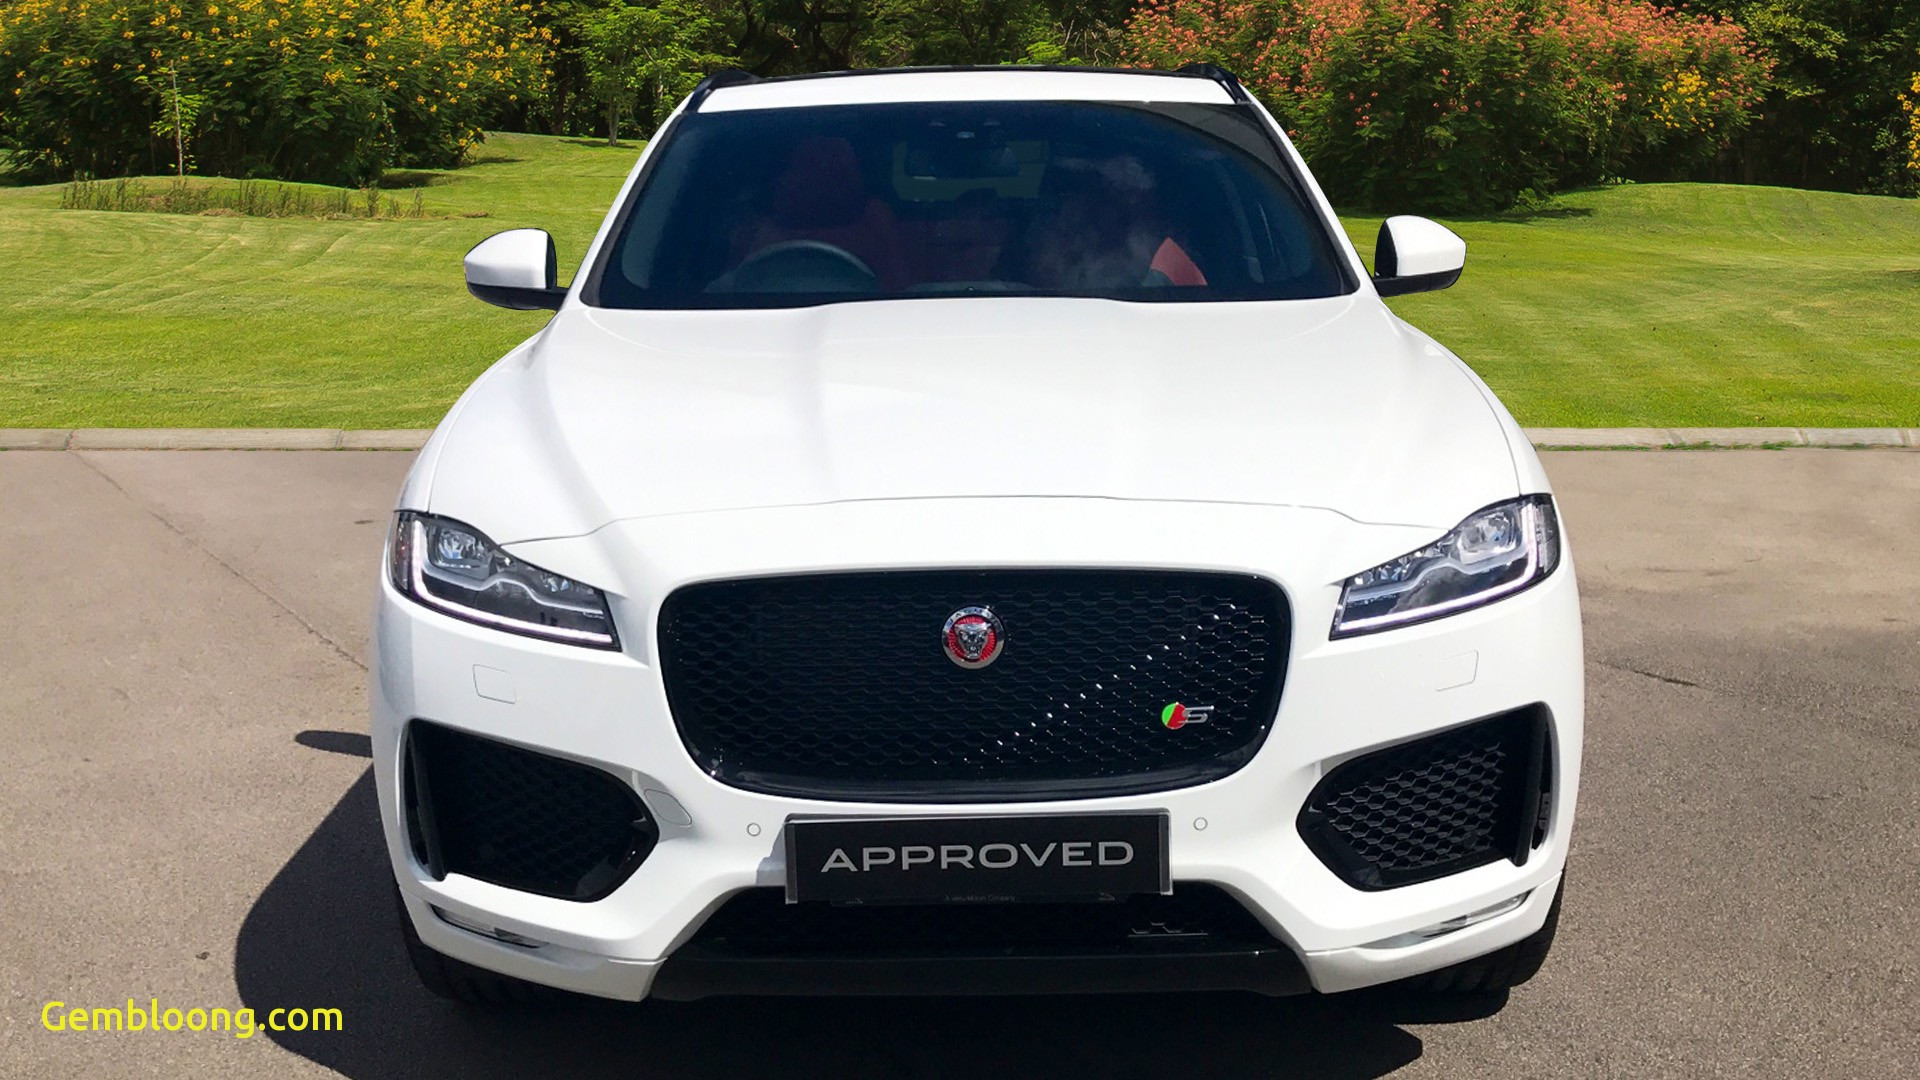 used cars for sale under 4000 near me luxury cars near me for 4000 inspirational used